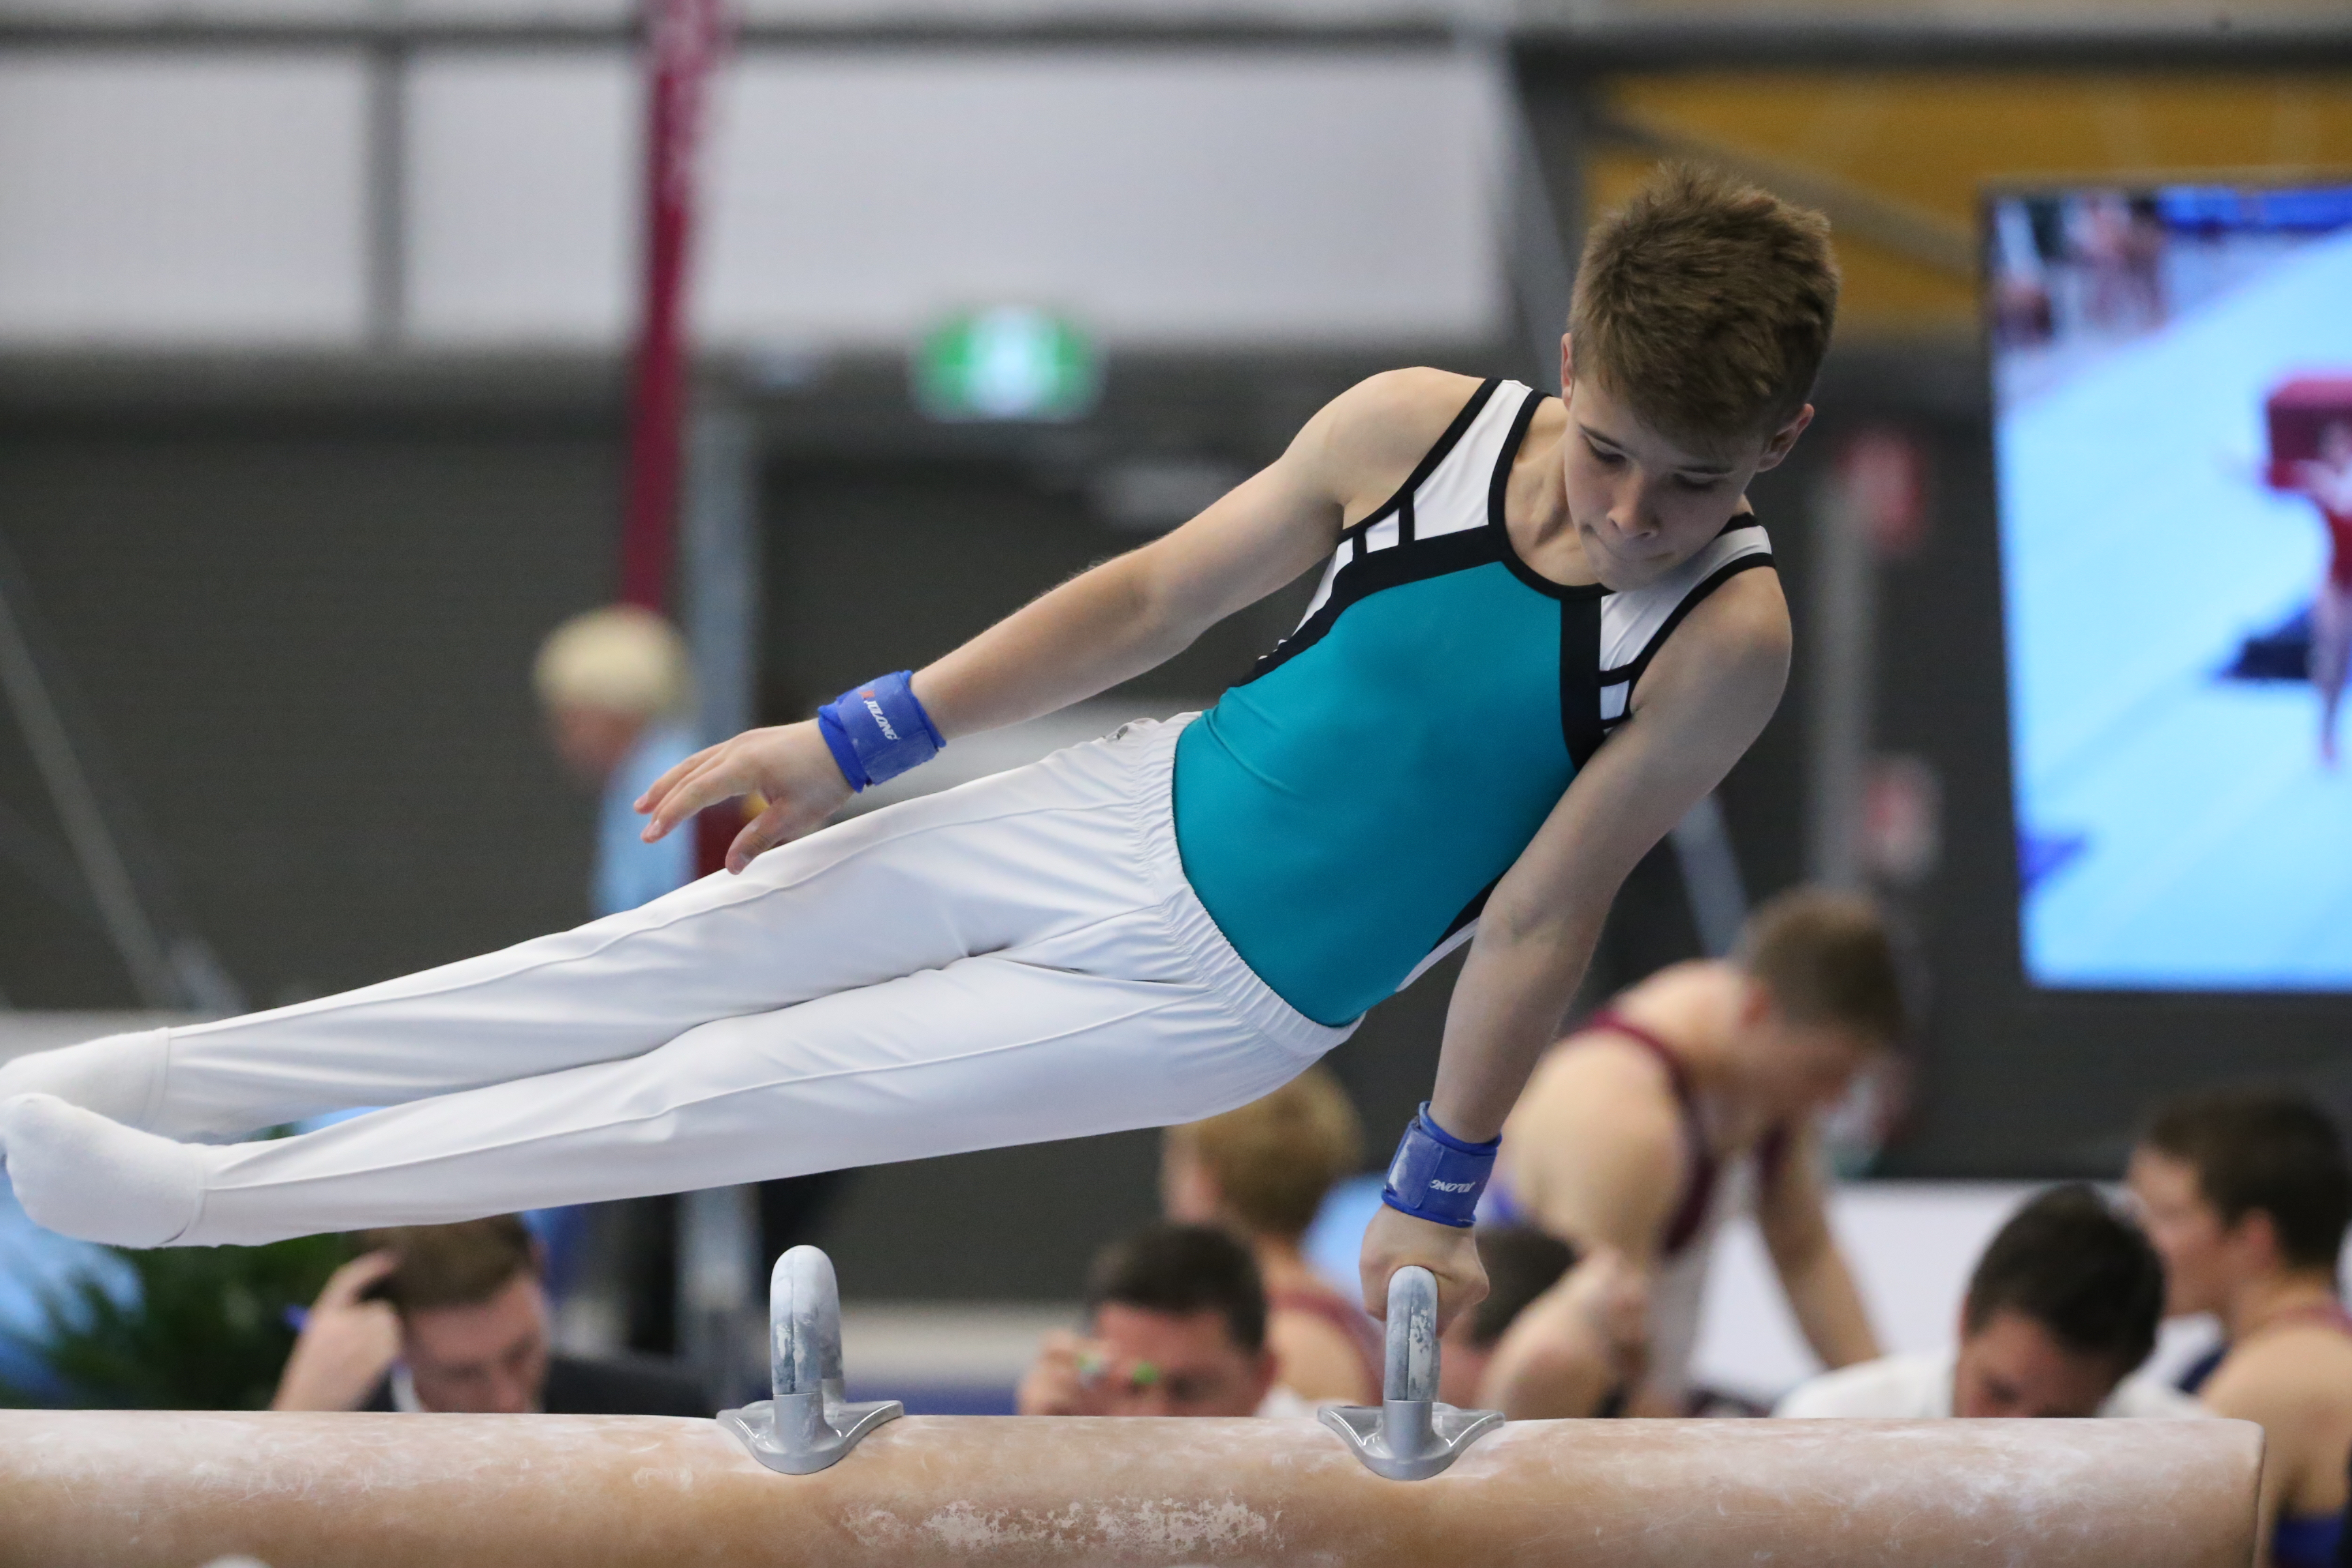 What are the categories in gymnastics